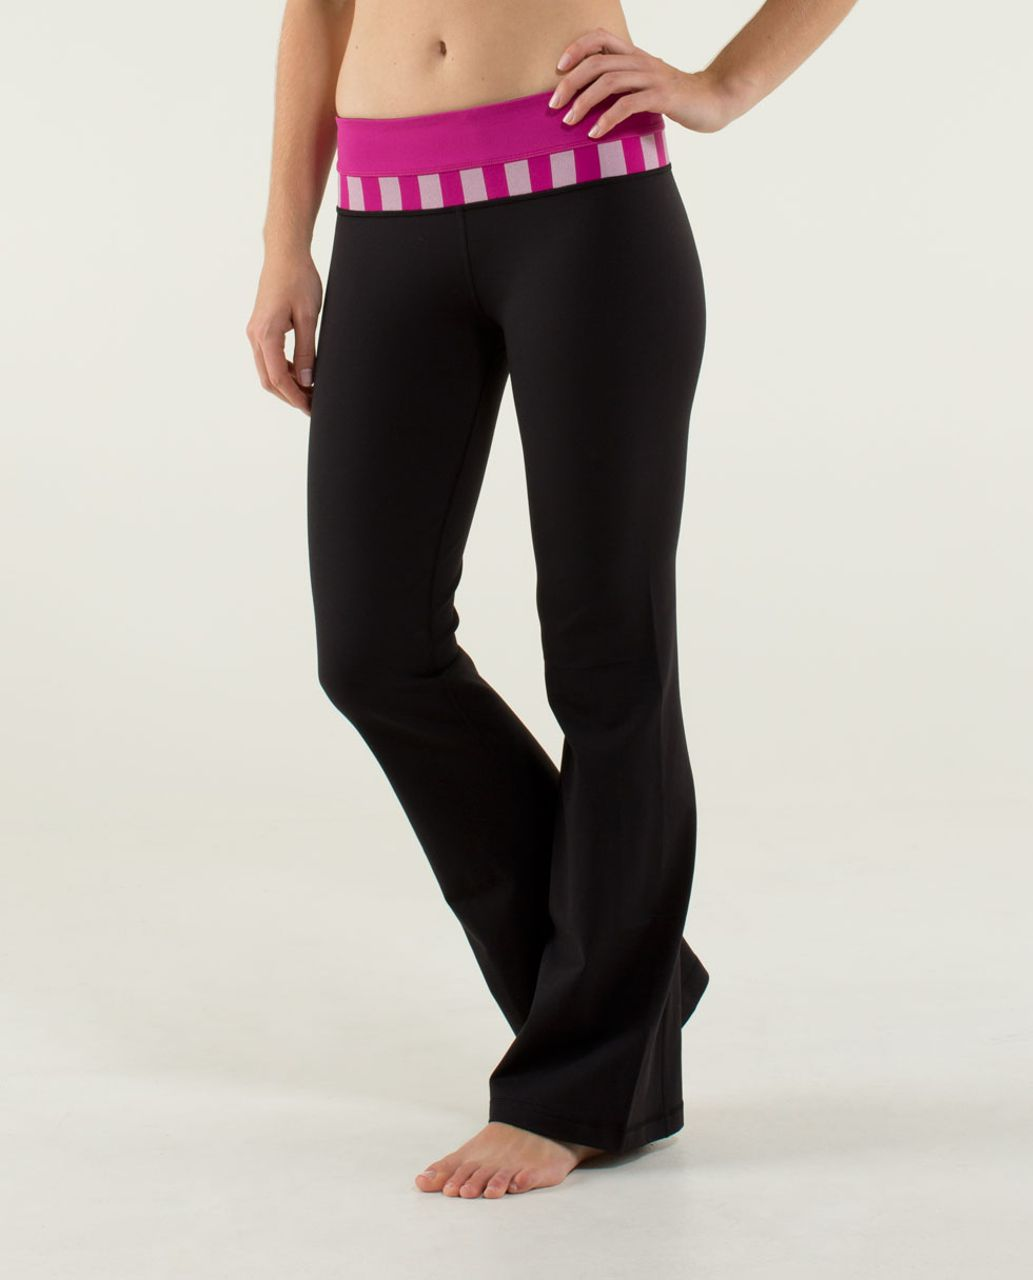 Lululemon Groove Pant (Regular) *Full-On Luon - Black / Raspberry / Micro Macro Stripe Raspberry